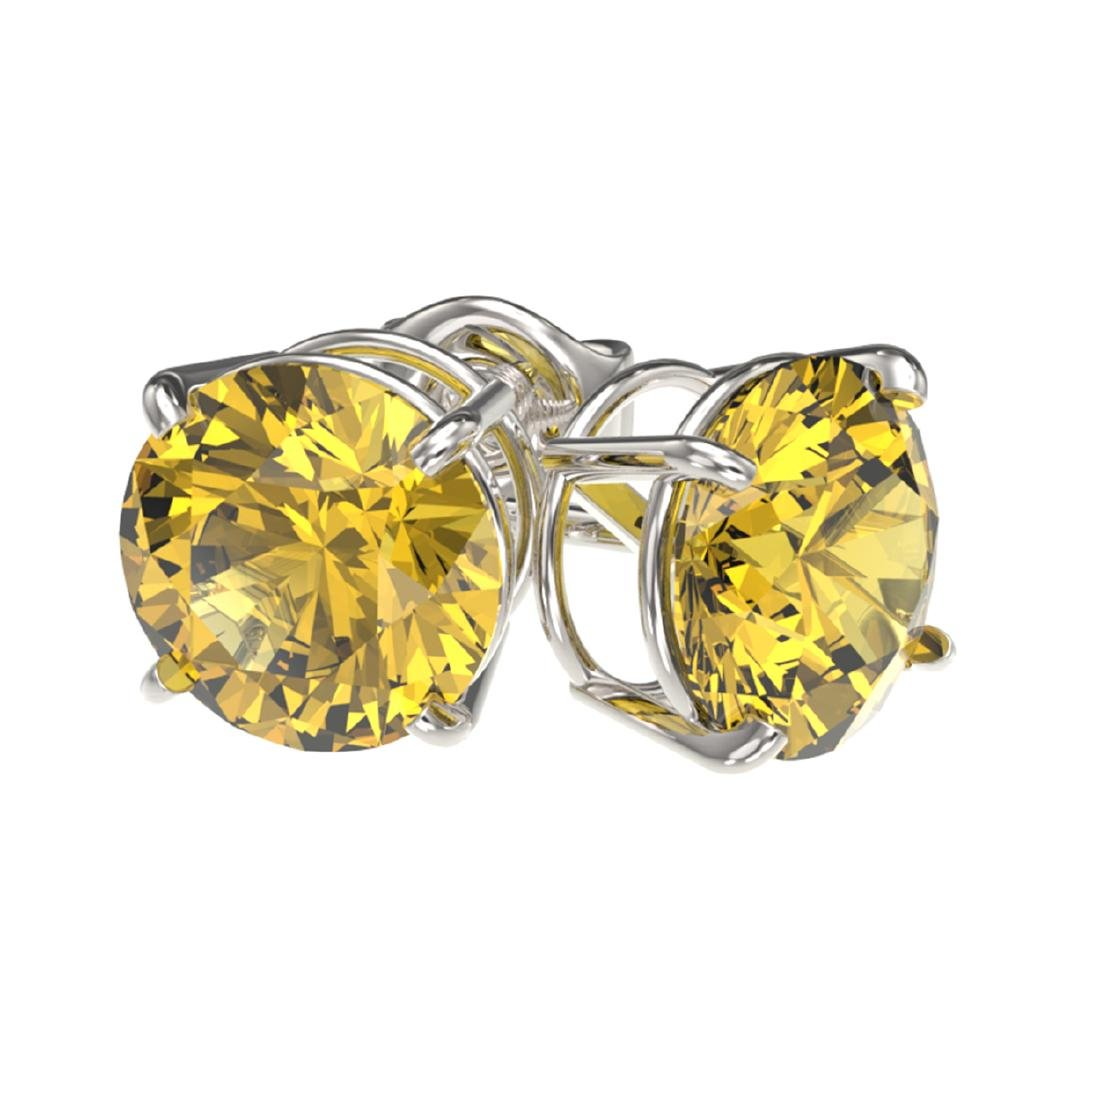 1.92 ctw Intense Yellow Diamond Stud Earrings 10K White - 3